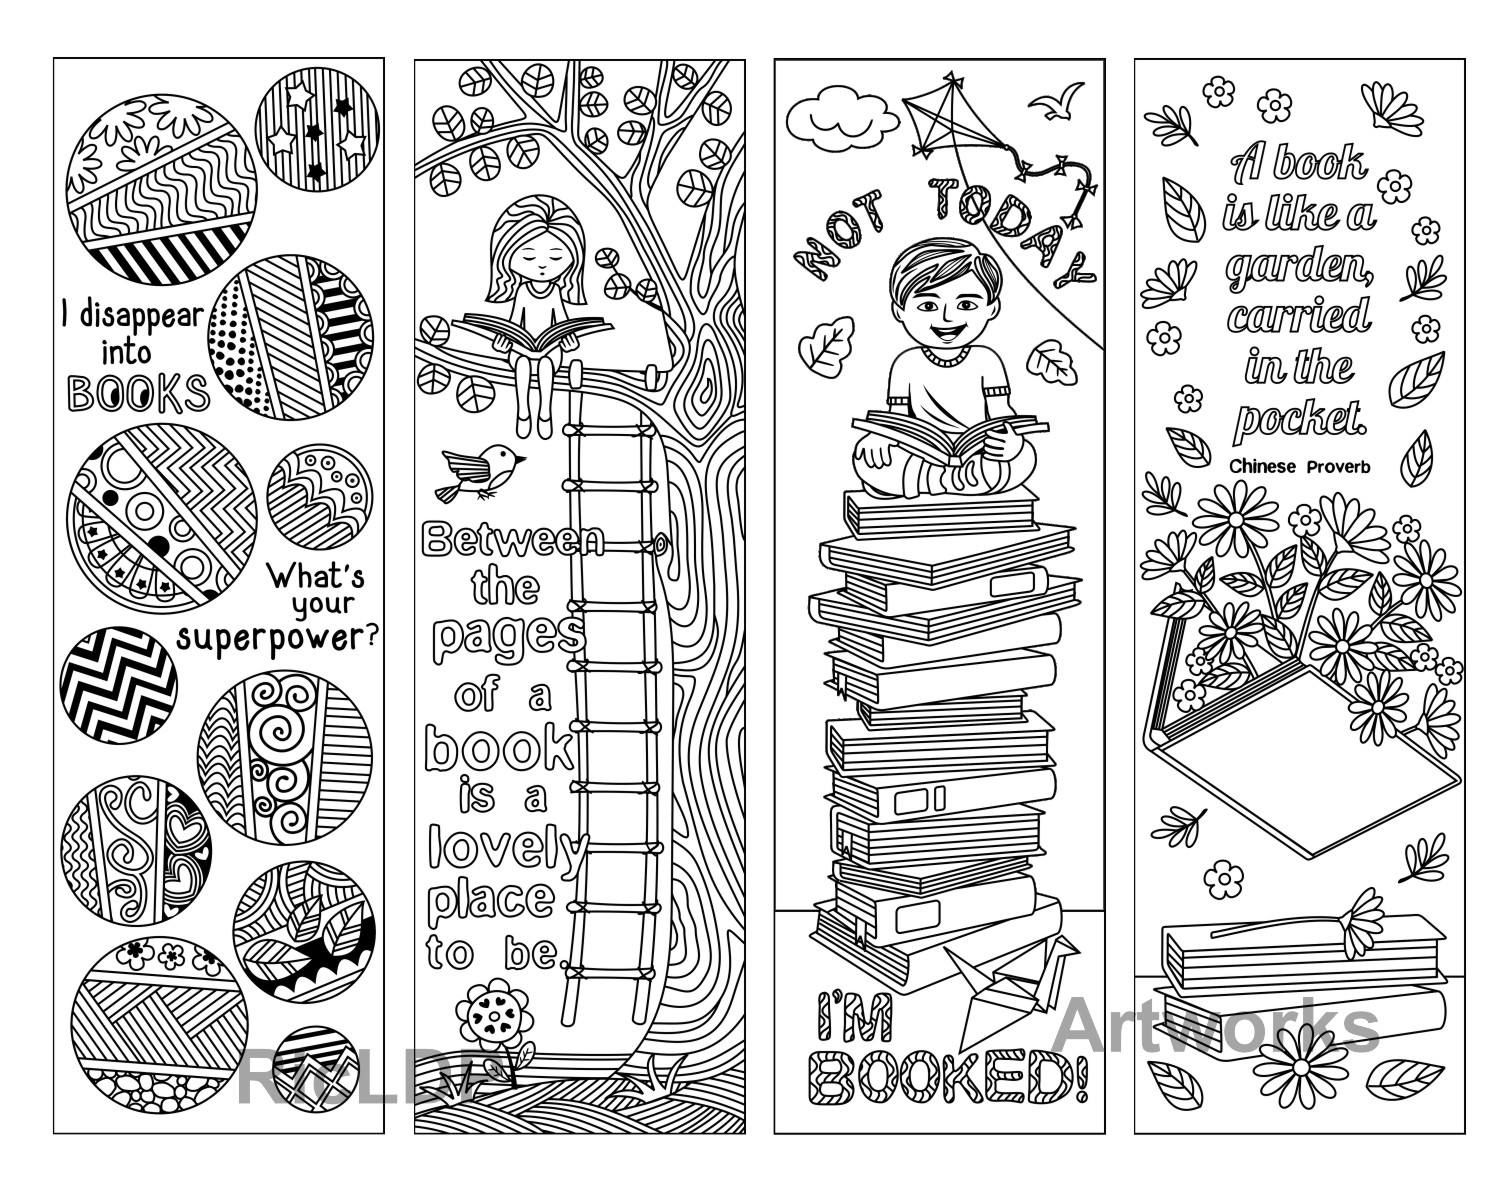 Coloring quotes printables - 8 Coloring Bookmarks With Quotes On Books And Reading Printable Coloring Bookmarks With Quotes